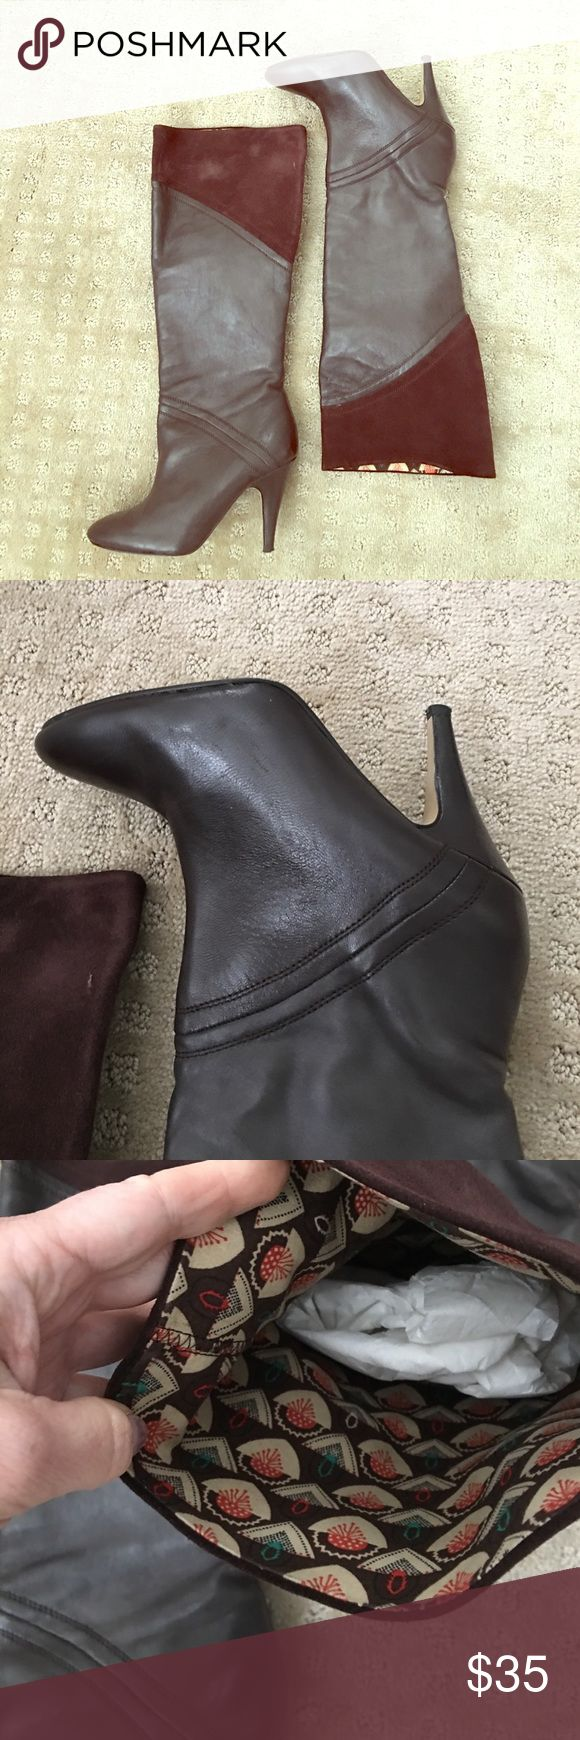 Anthropologie Seychelles boots, leather/suede, 6 absolutely beautiful and super comfortable. worn once. beautiful lining and suede details Seychelles Shoes Heeled Boots